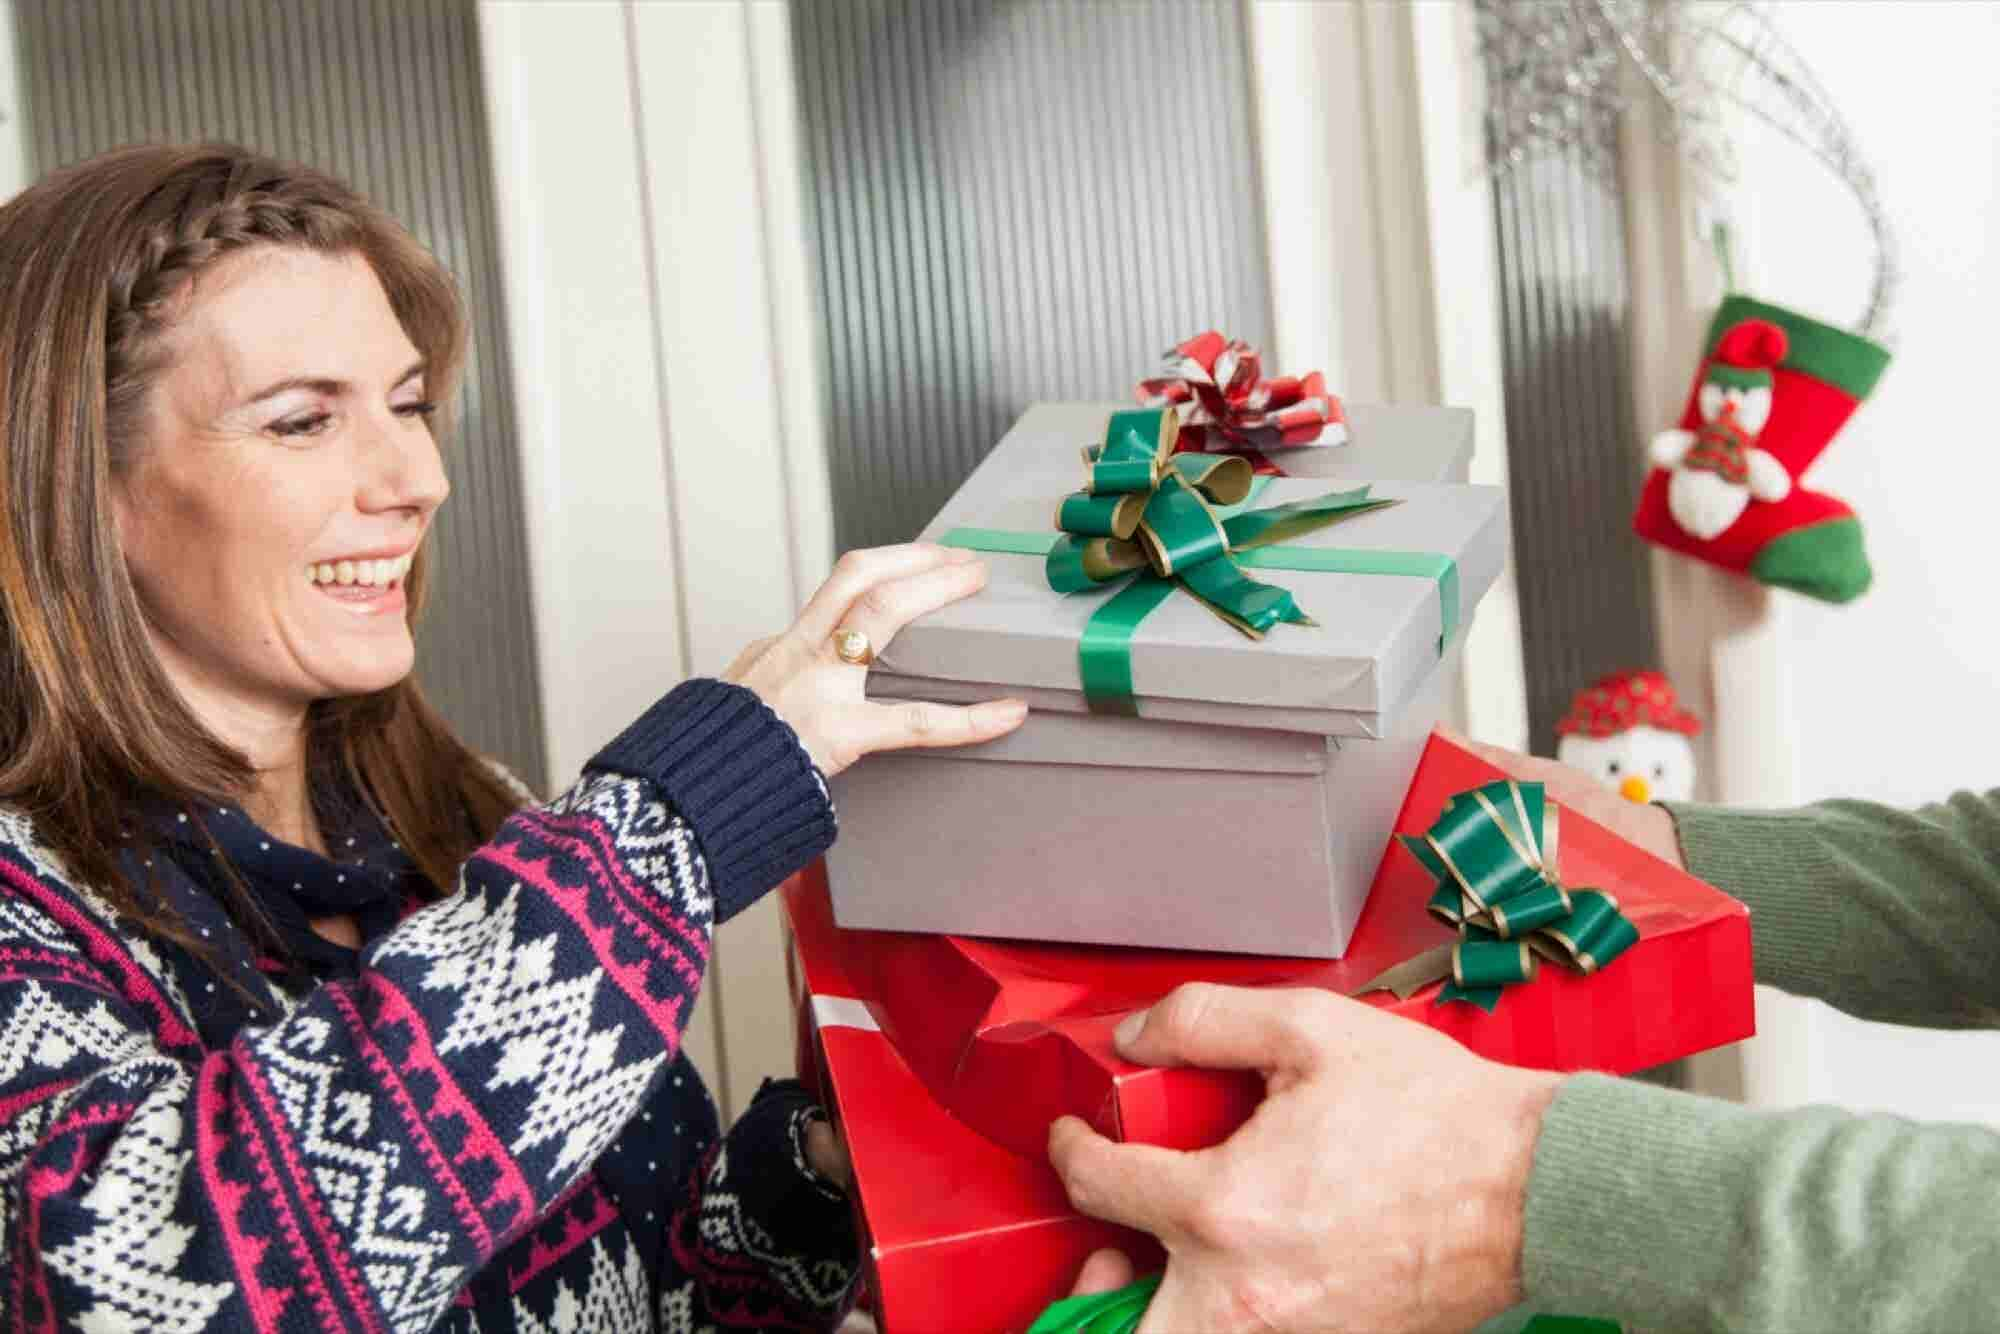 How to Break Through Competition in the Business of Online Gifting